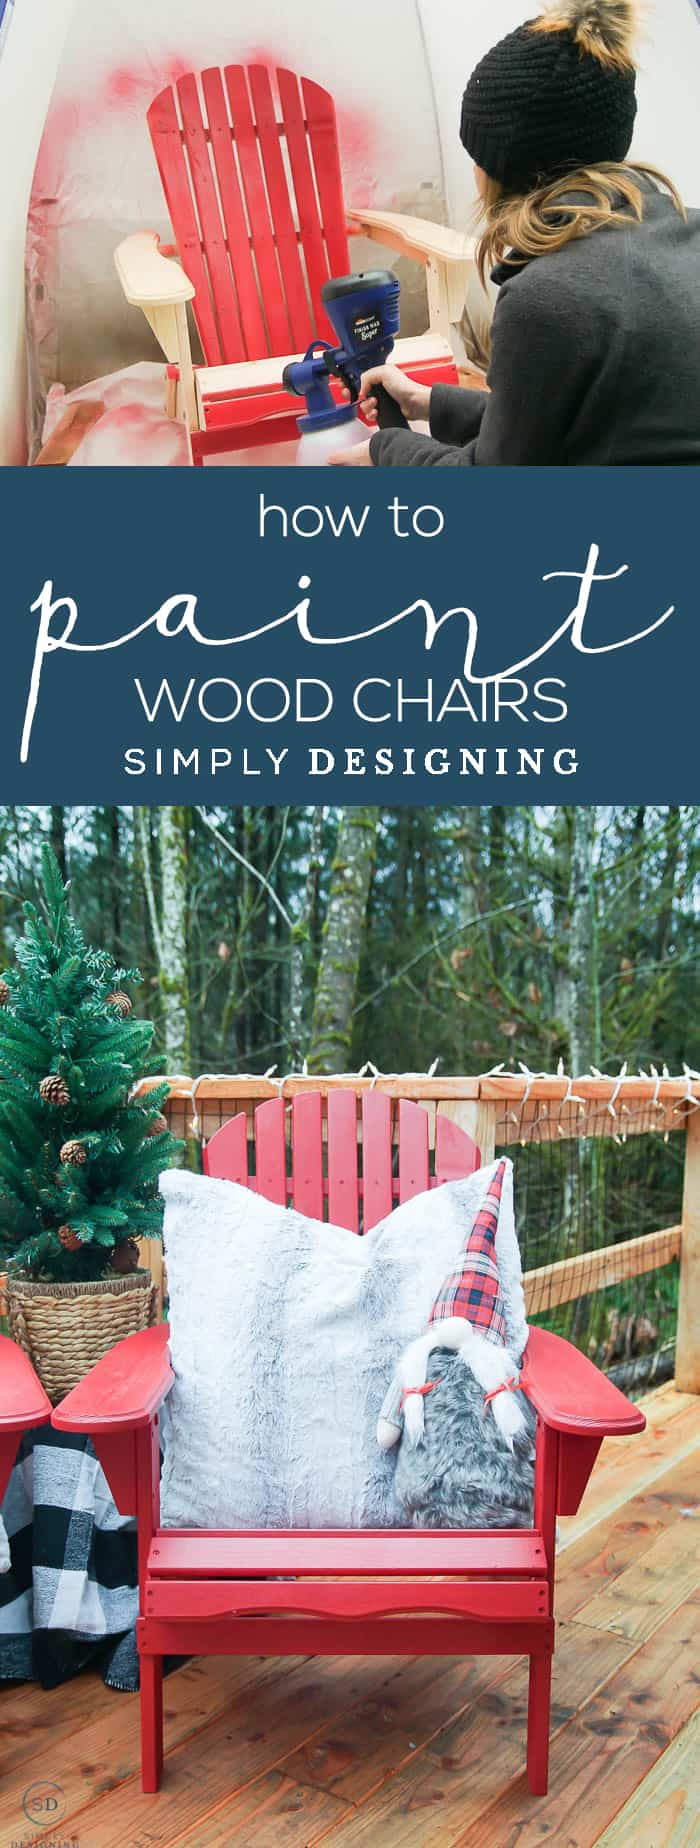 Tips and tricks for How to Paint Wood Chairs easily so that you can get a near-flawless result every single time